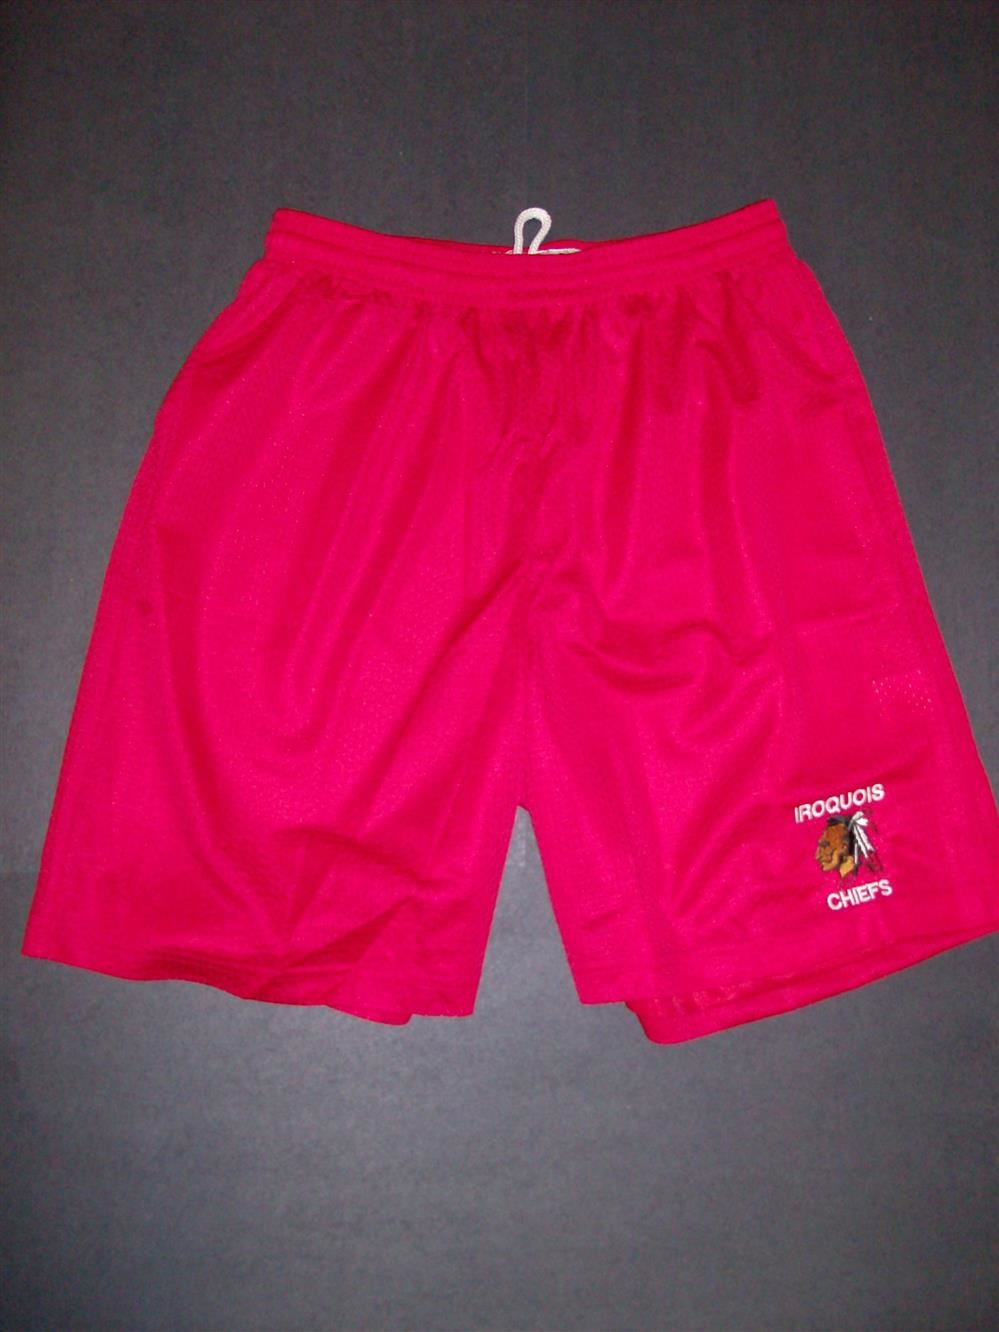 Long Shorts mens